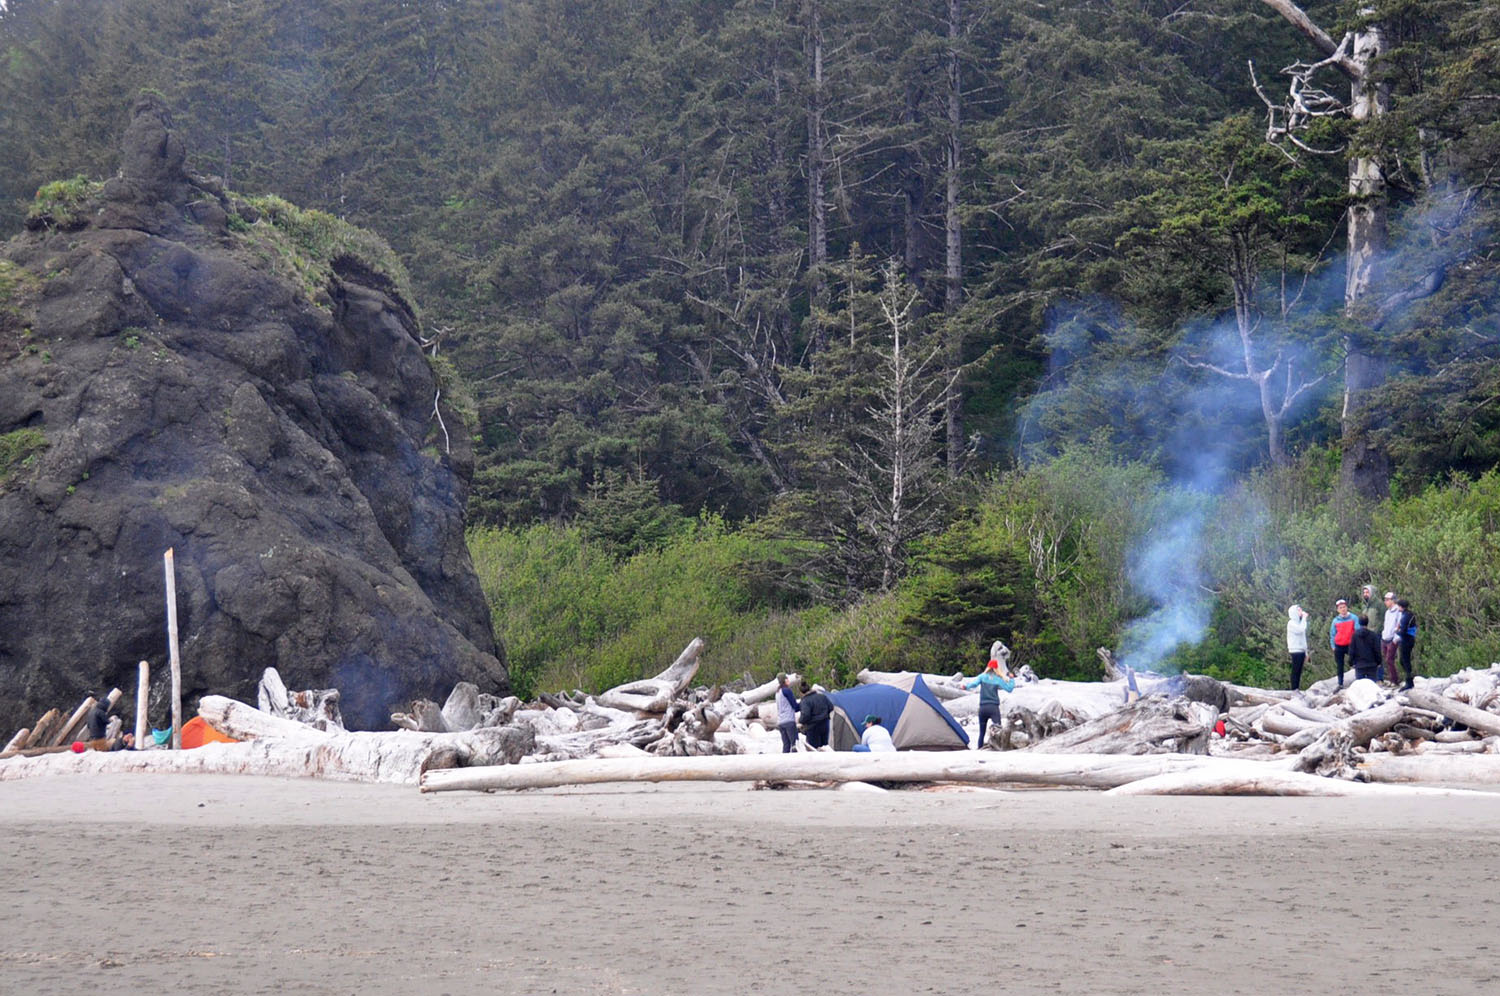 Campers congregating on Second Beach in La Push